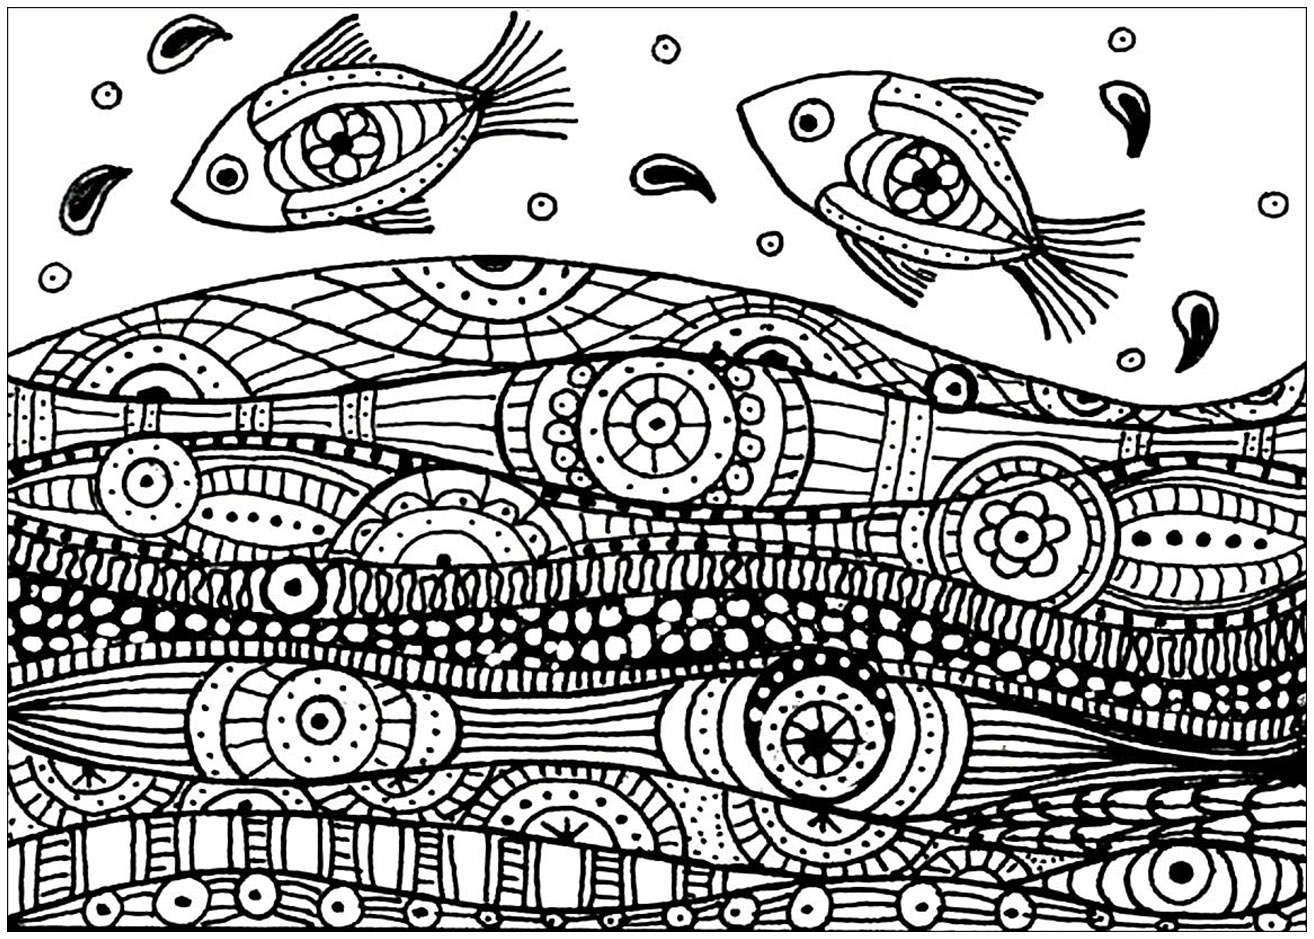 Fishes on the waves, drawing with simple zentangle patterns